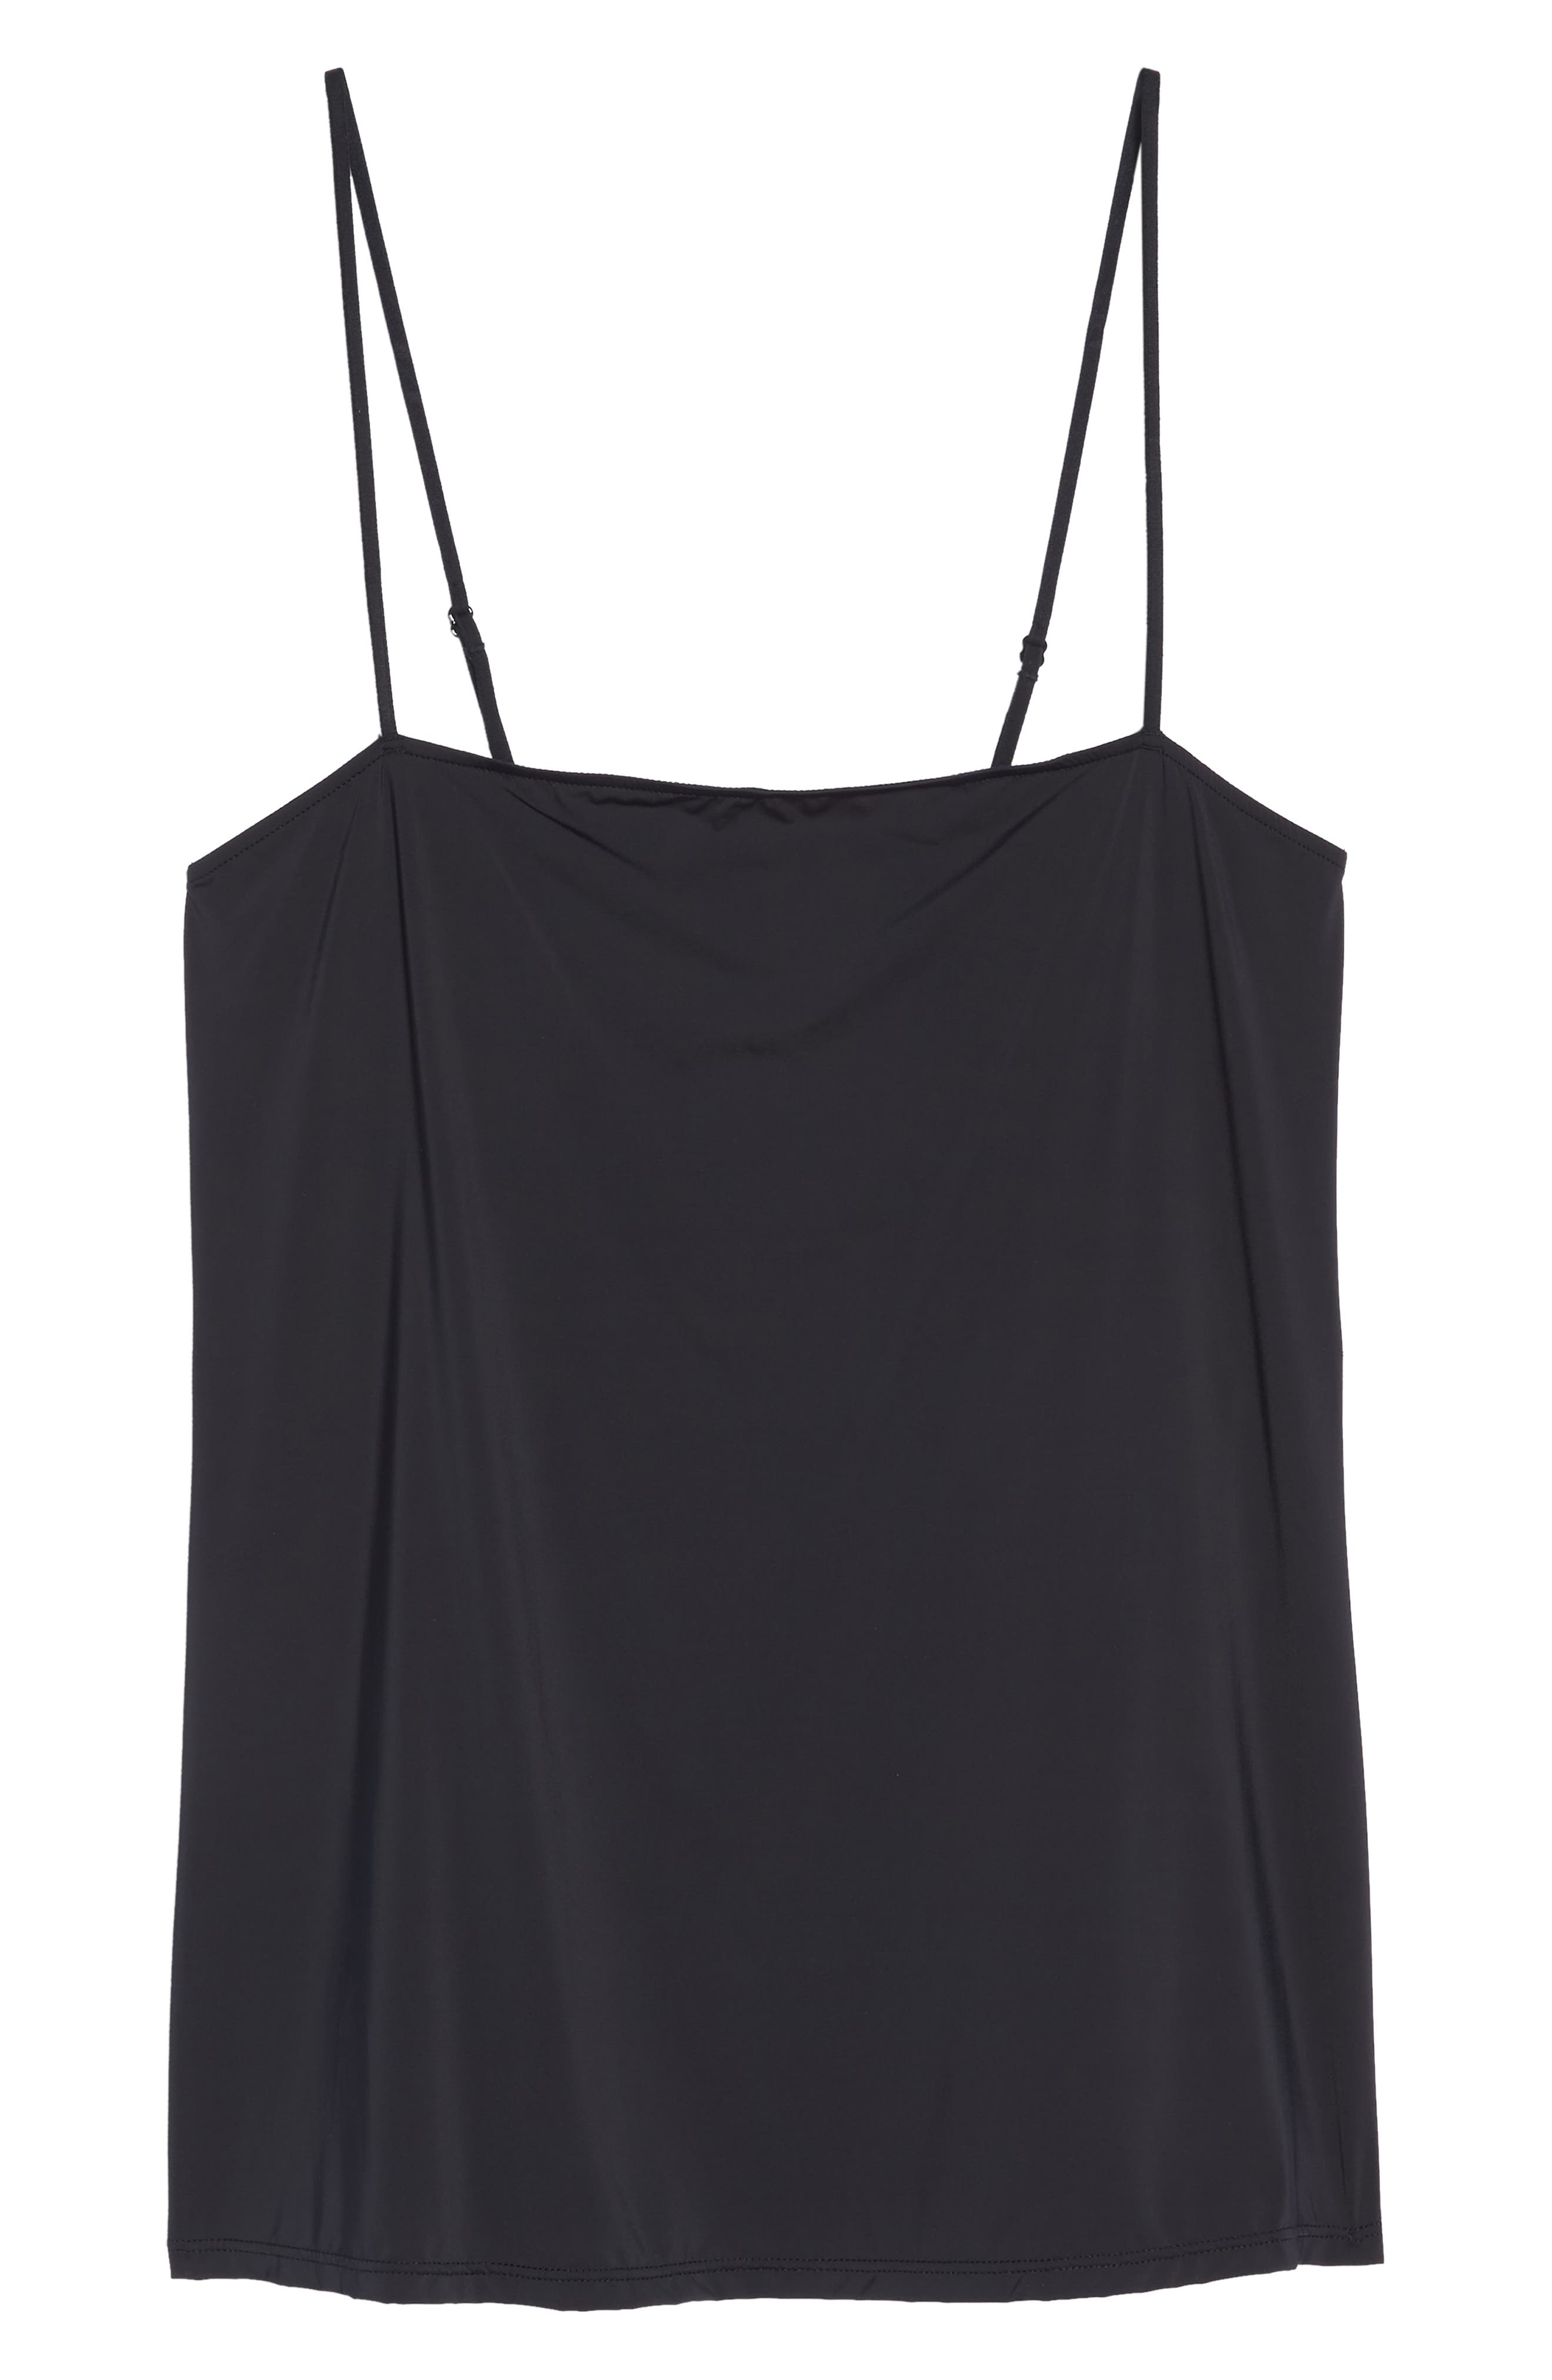 Infinity Lace Back Camisole,                             Alternate thumbnail 6, color,                             BLACK